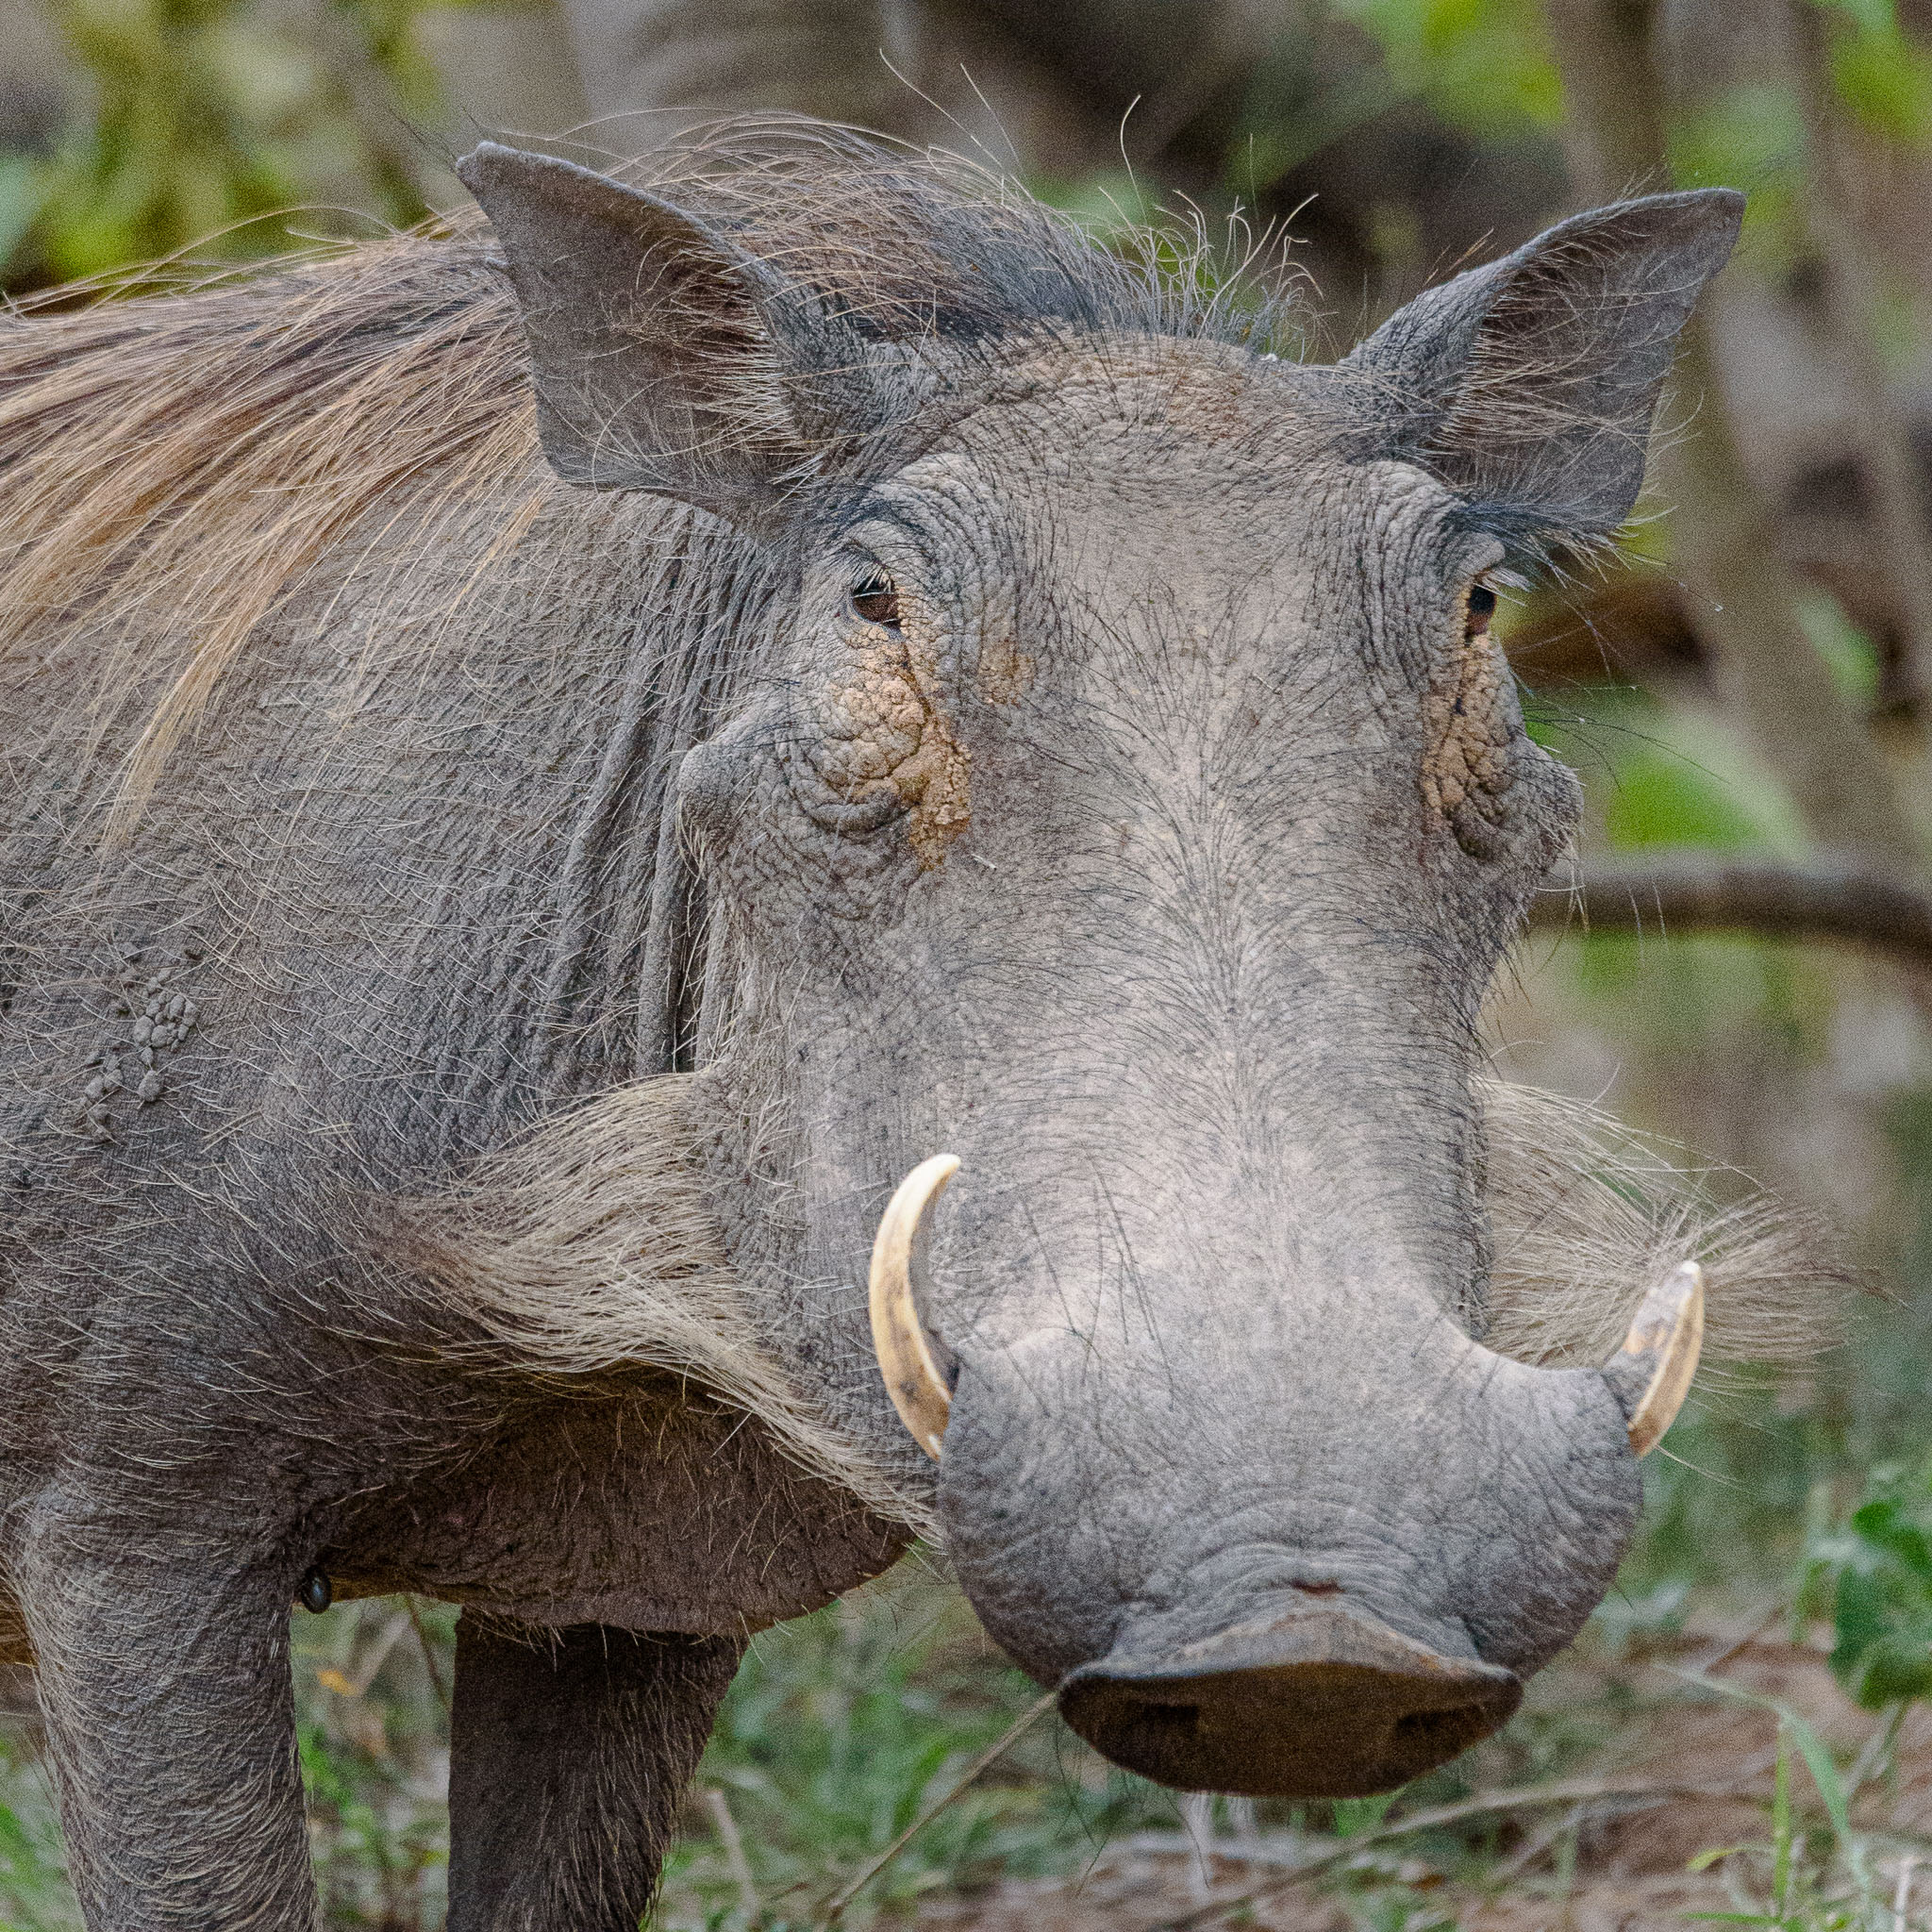 Warthogs might not be everybody's idea of a beautiful creature. I think though that some can have a bit of charm.